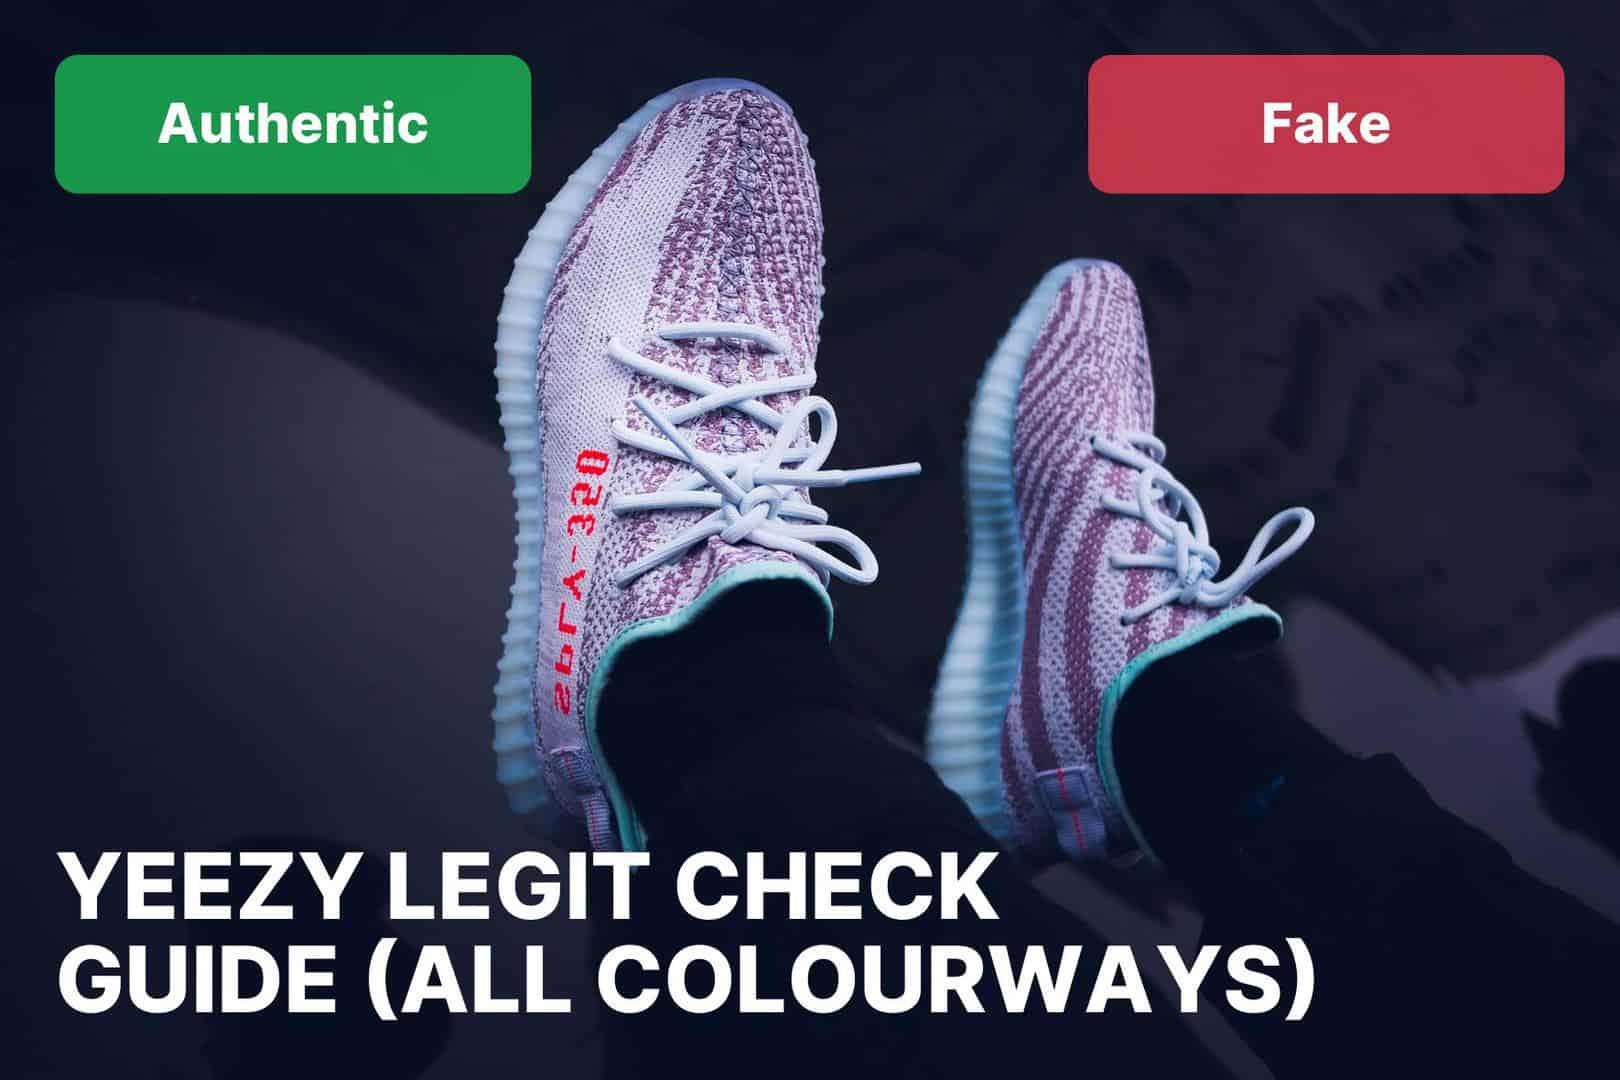 yeezy boost 350 v2 real vs fake comparison guide